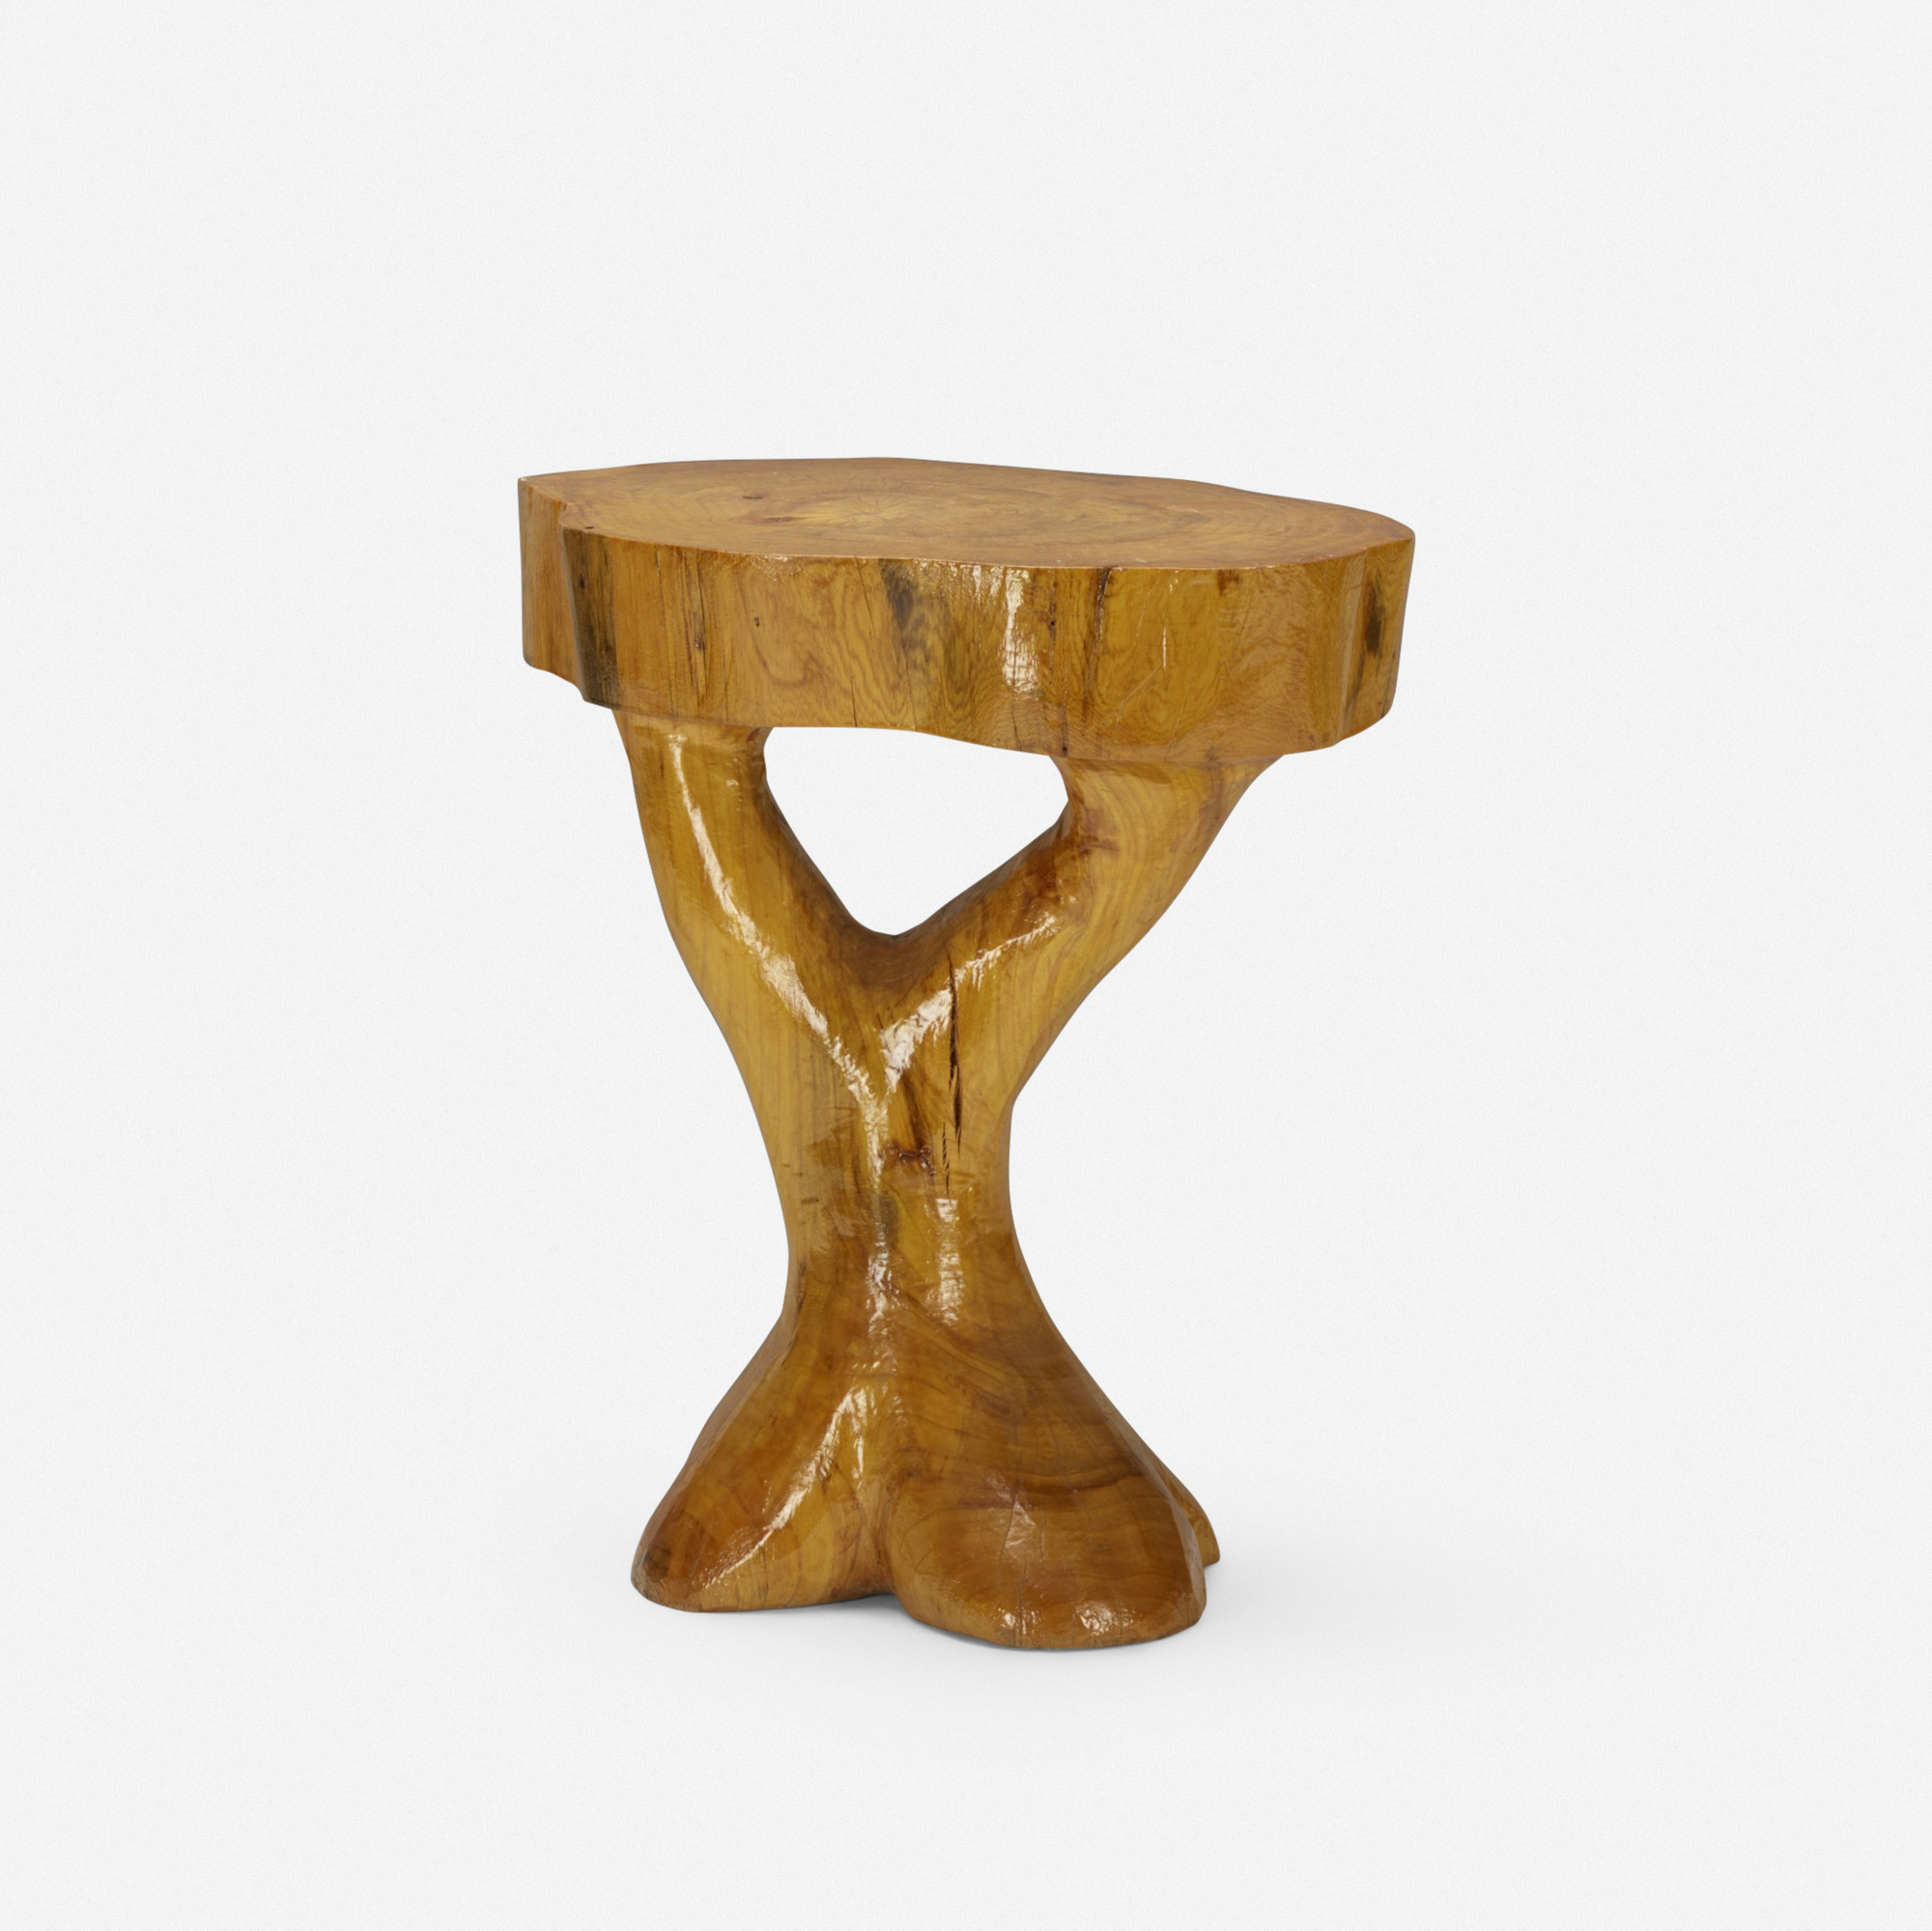 263: In the manner of Alexandre Noll / occasional table (1 of 4)